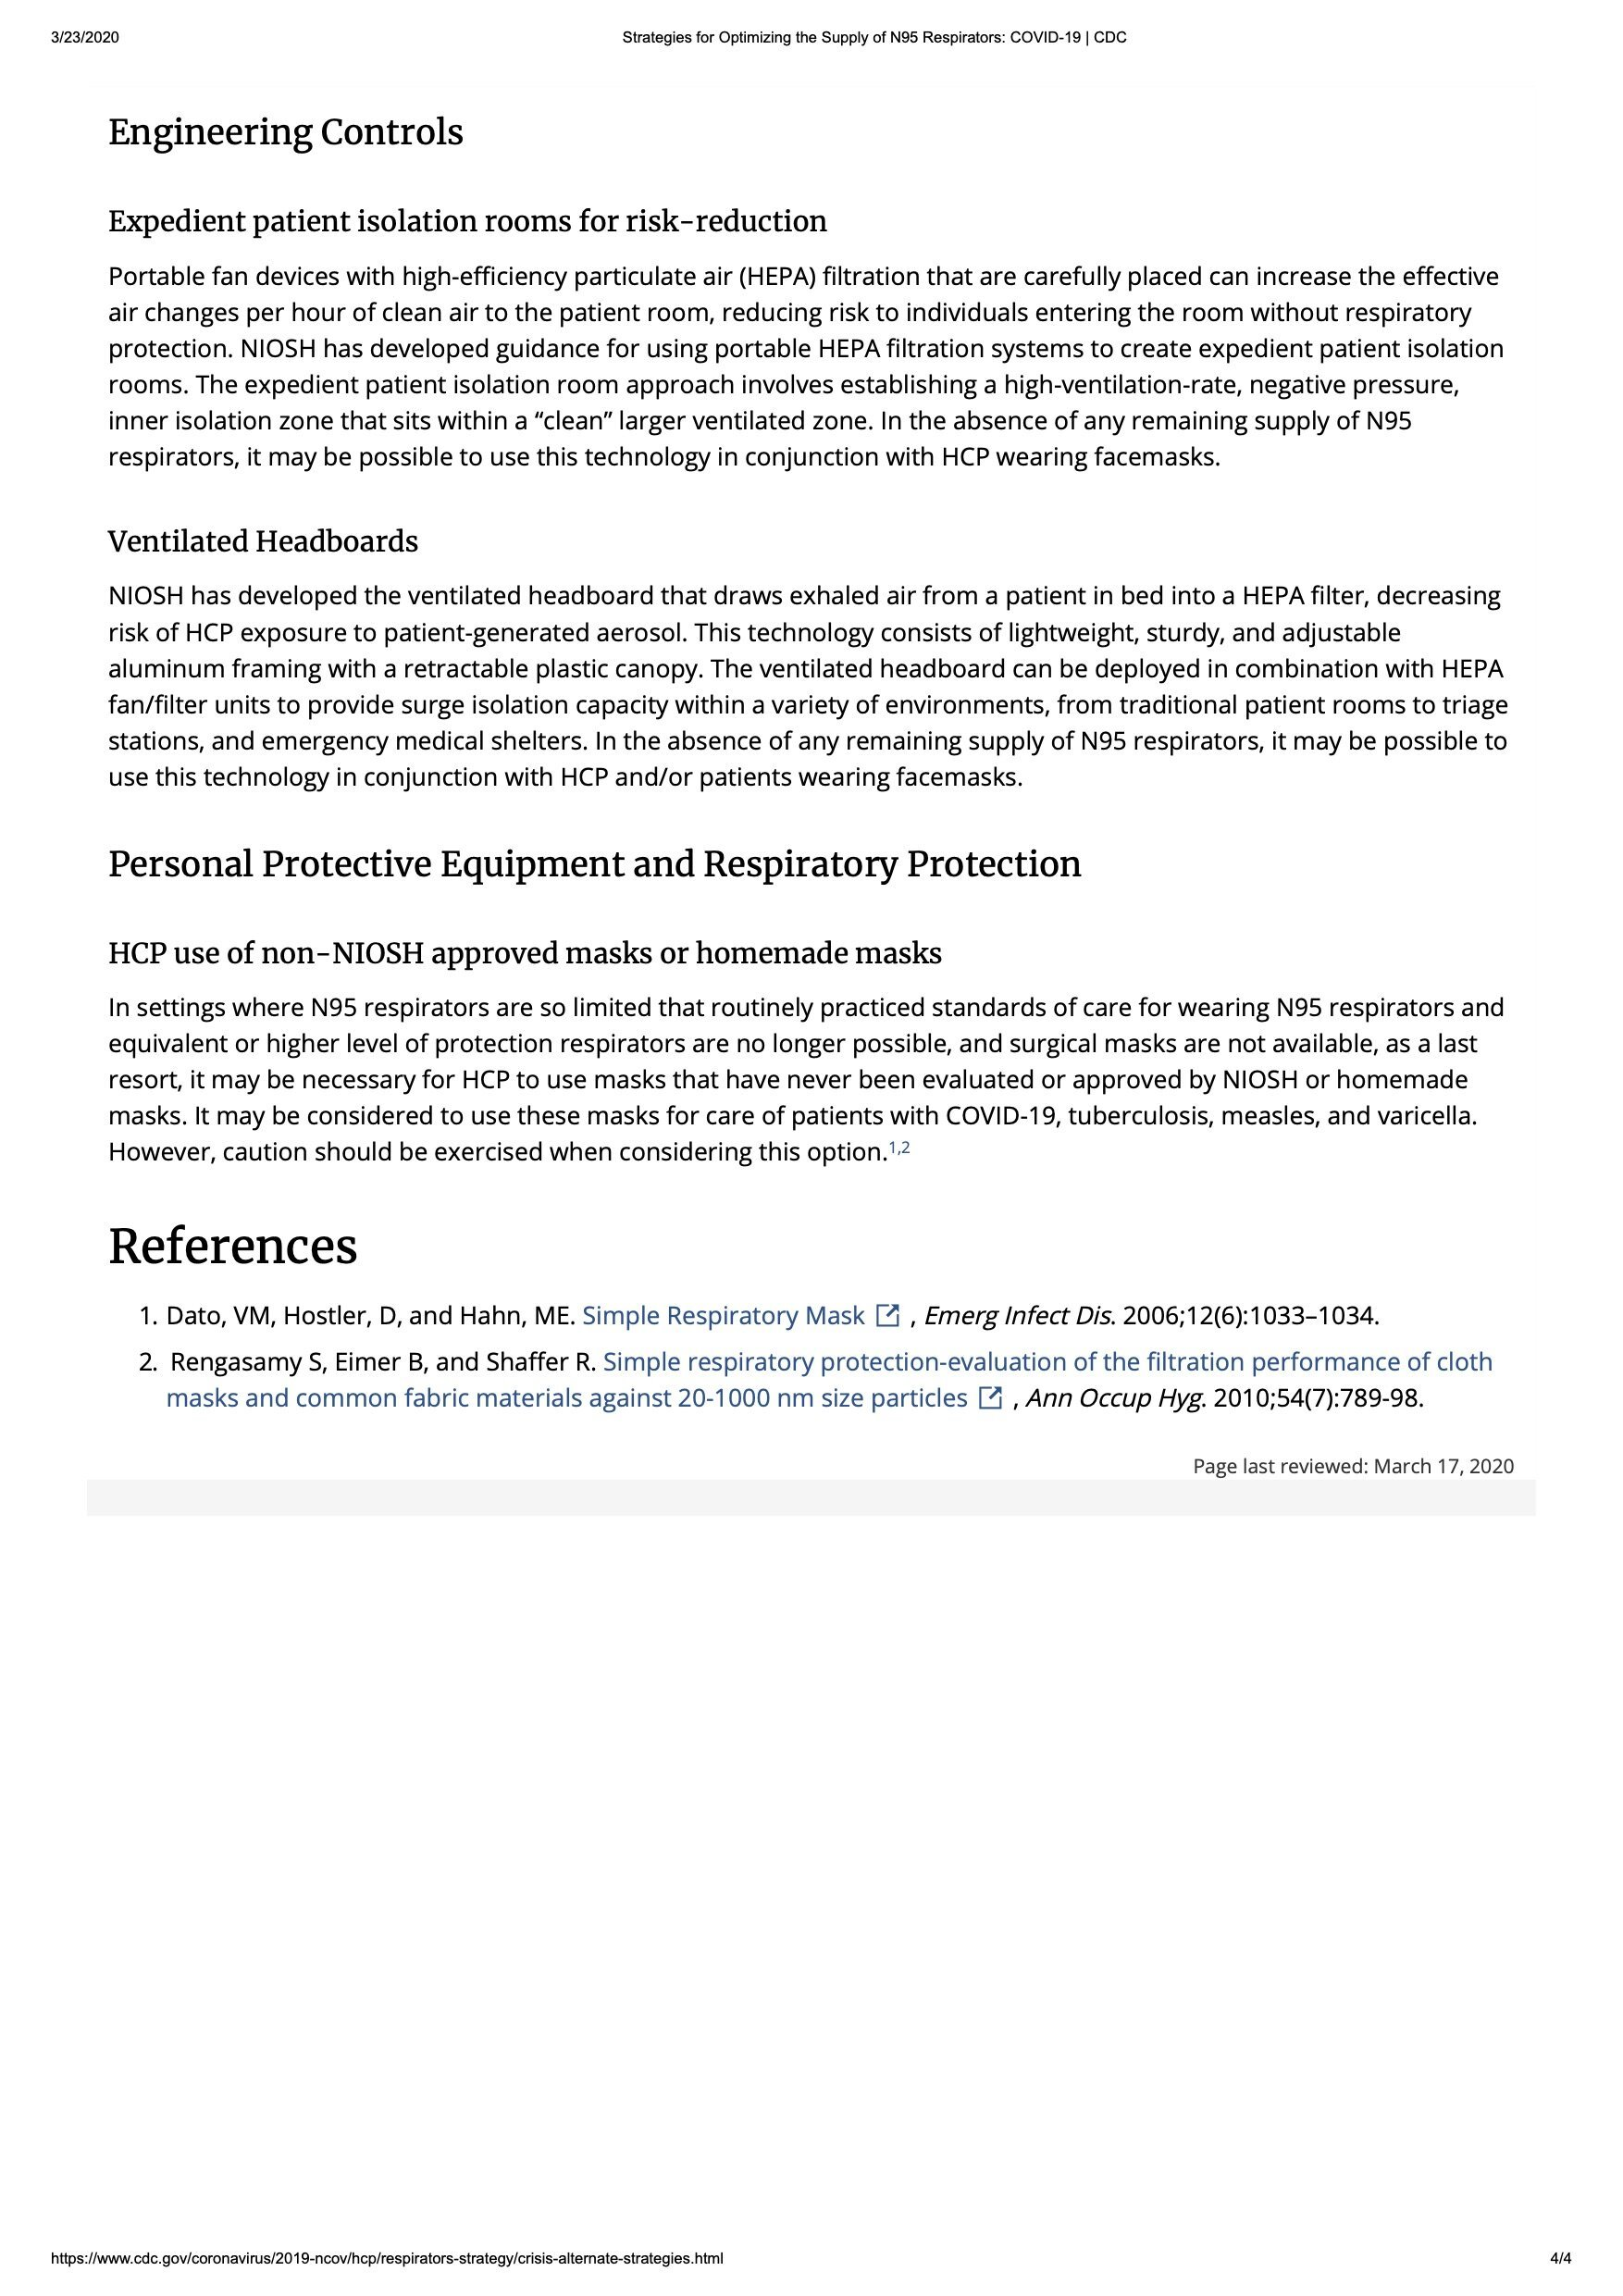 D-Strategies-for-Optimizing-the-Supply-of-N95-Respirators-COVID-19-CDC-KN95-Dta4